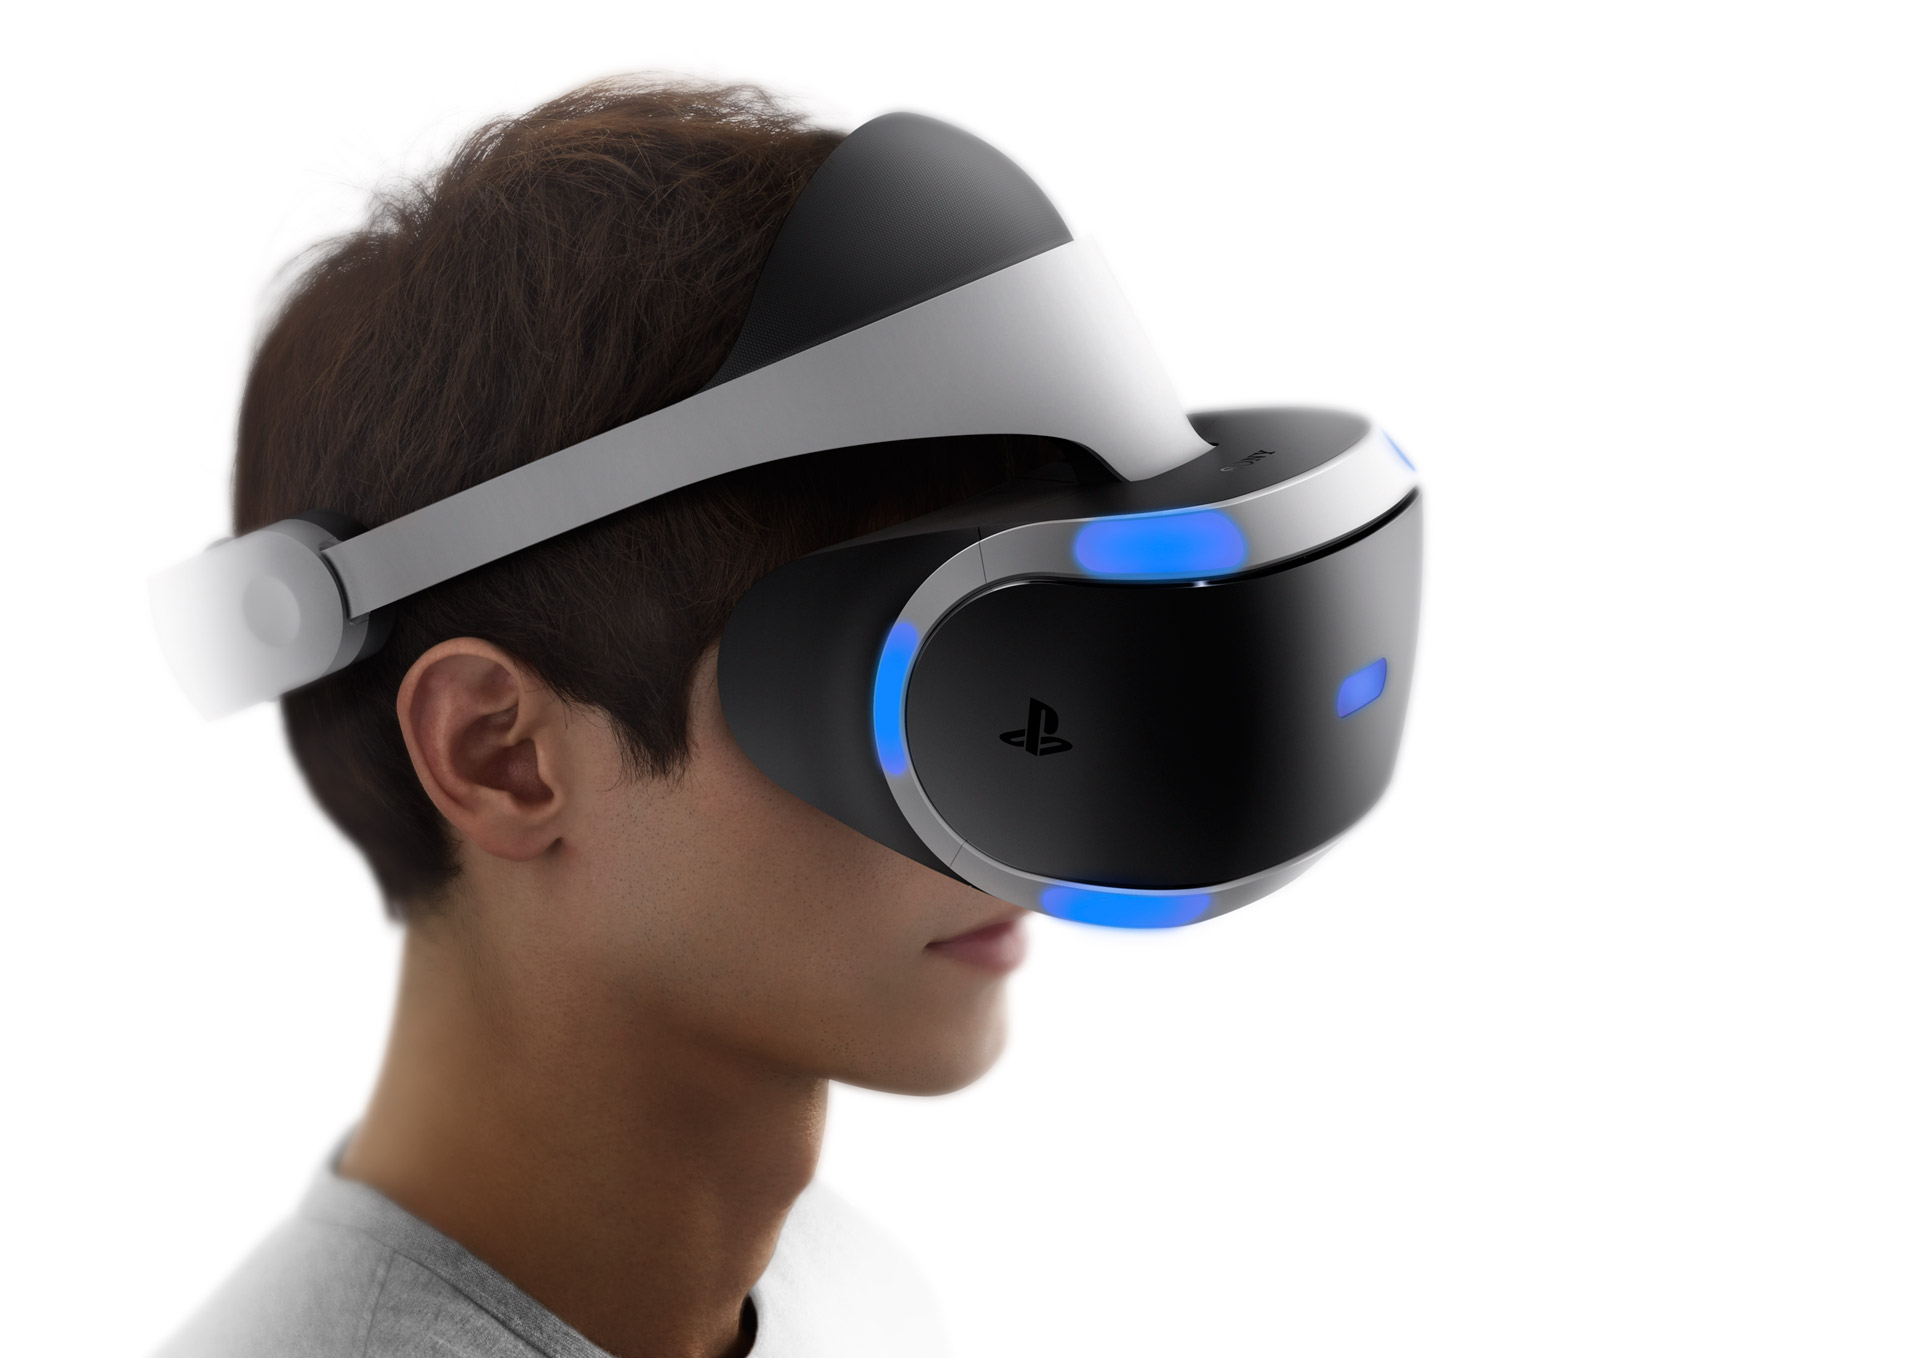 The new PlayStation VR Headset is due for release this month - PS VR